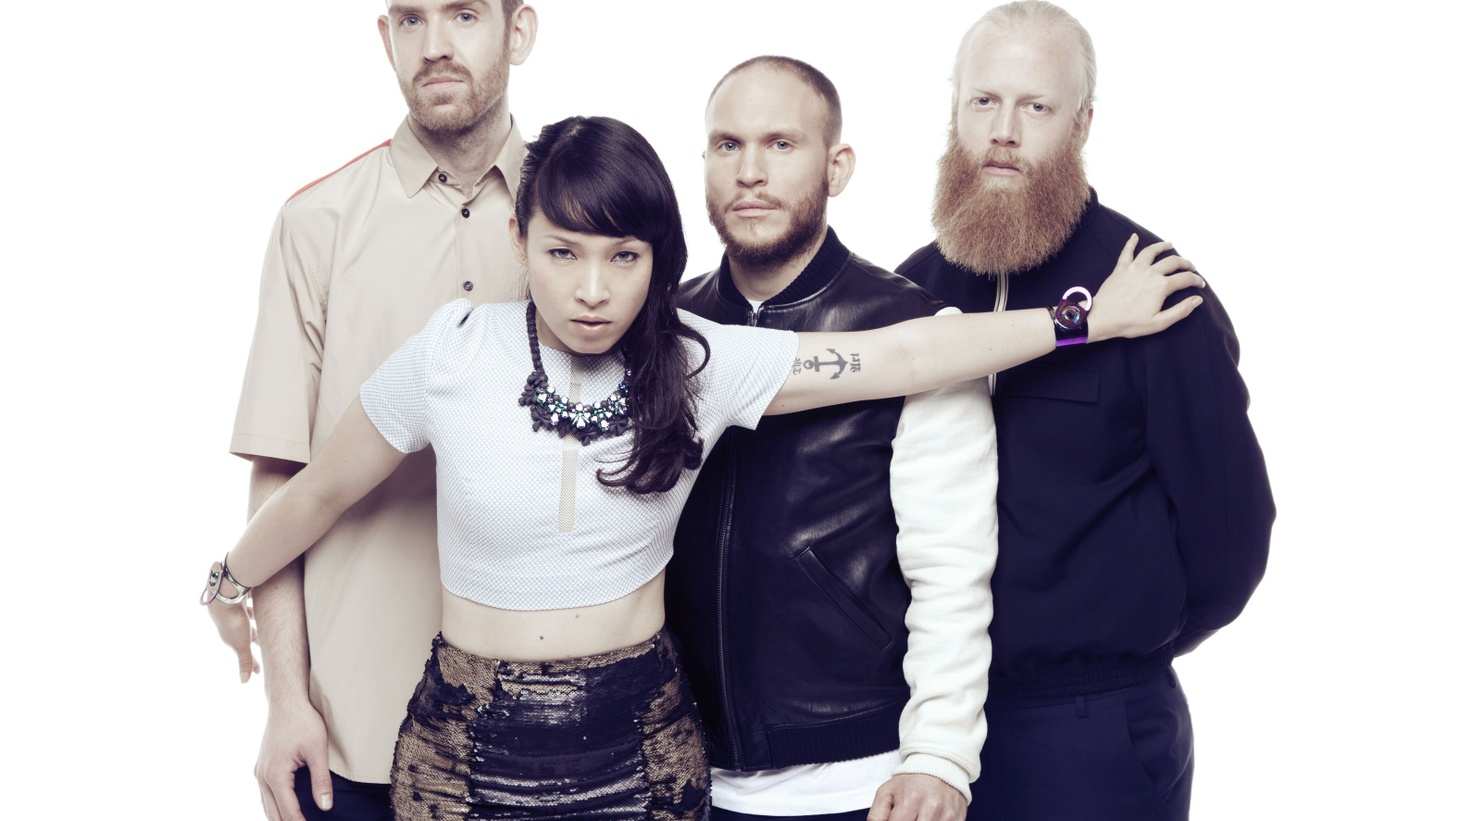 Swedish experimental outfit Little Dragon let the electro-groove flow on their fourth album. Elegant singer and longtime KCRW favorite Yukimi Nagano fronts a tight band.